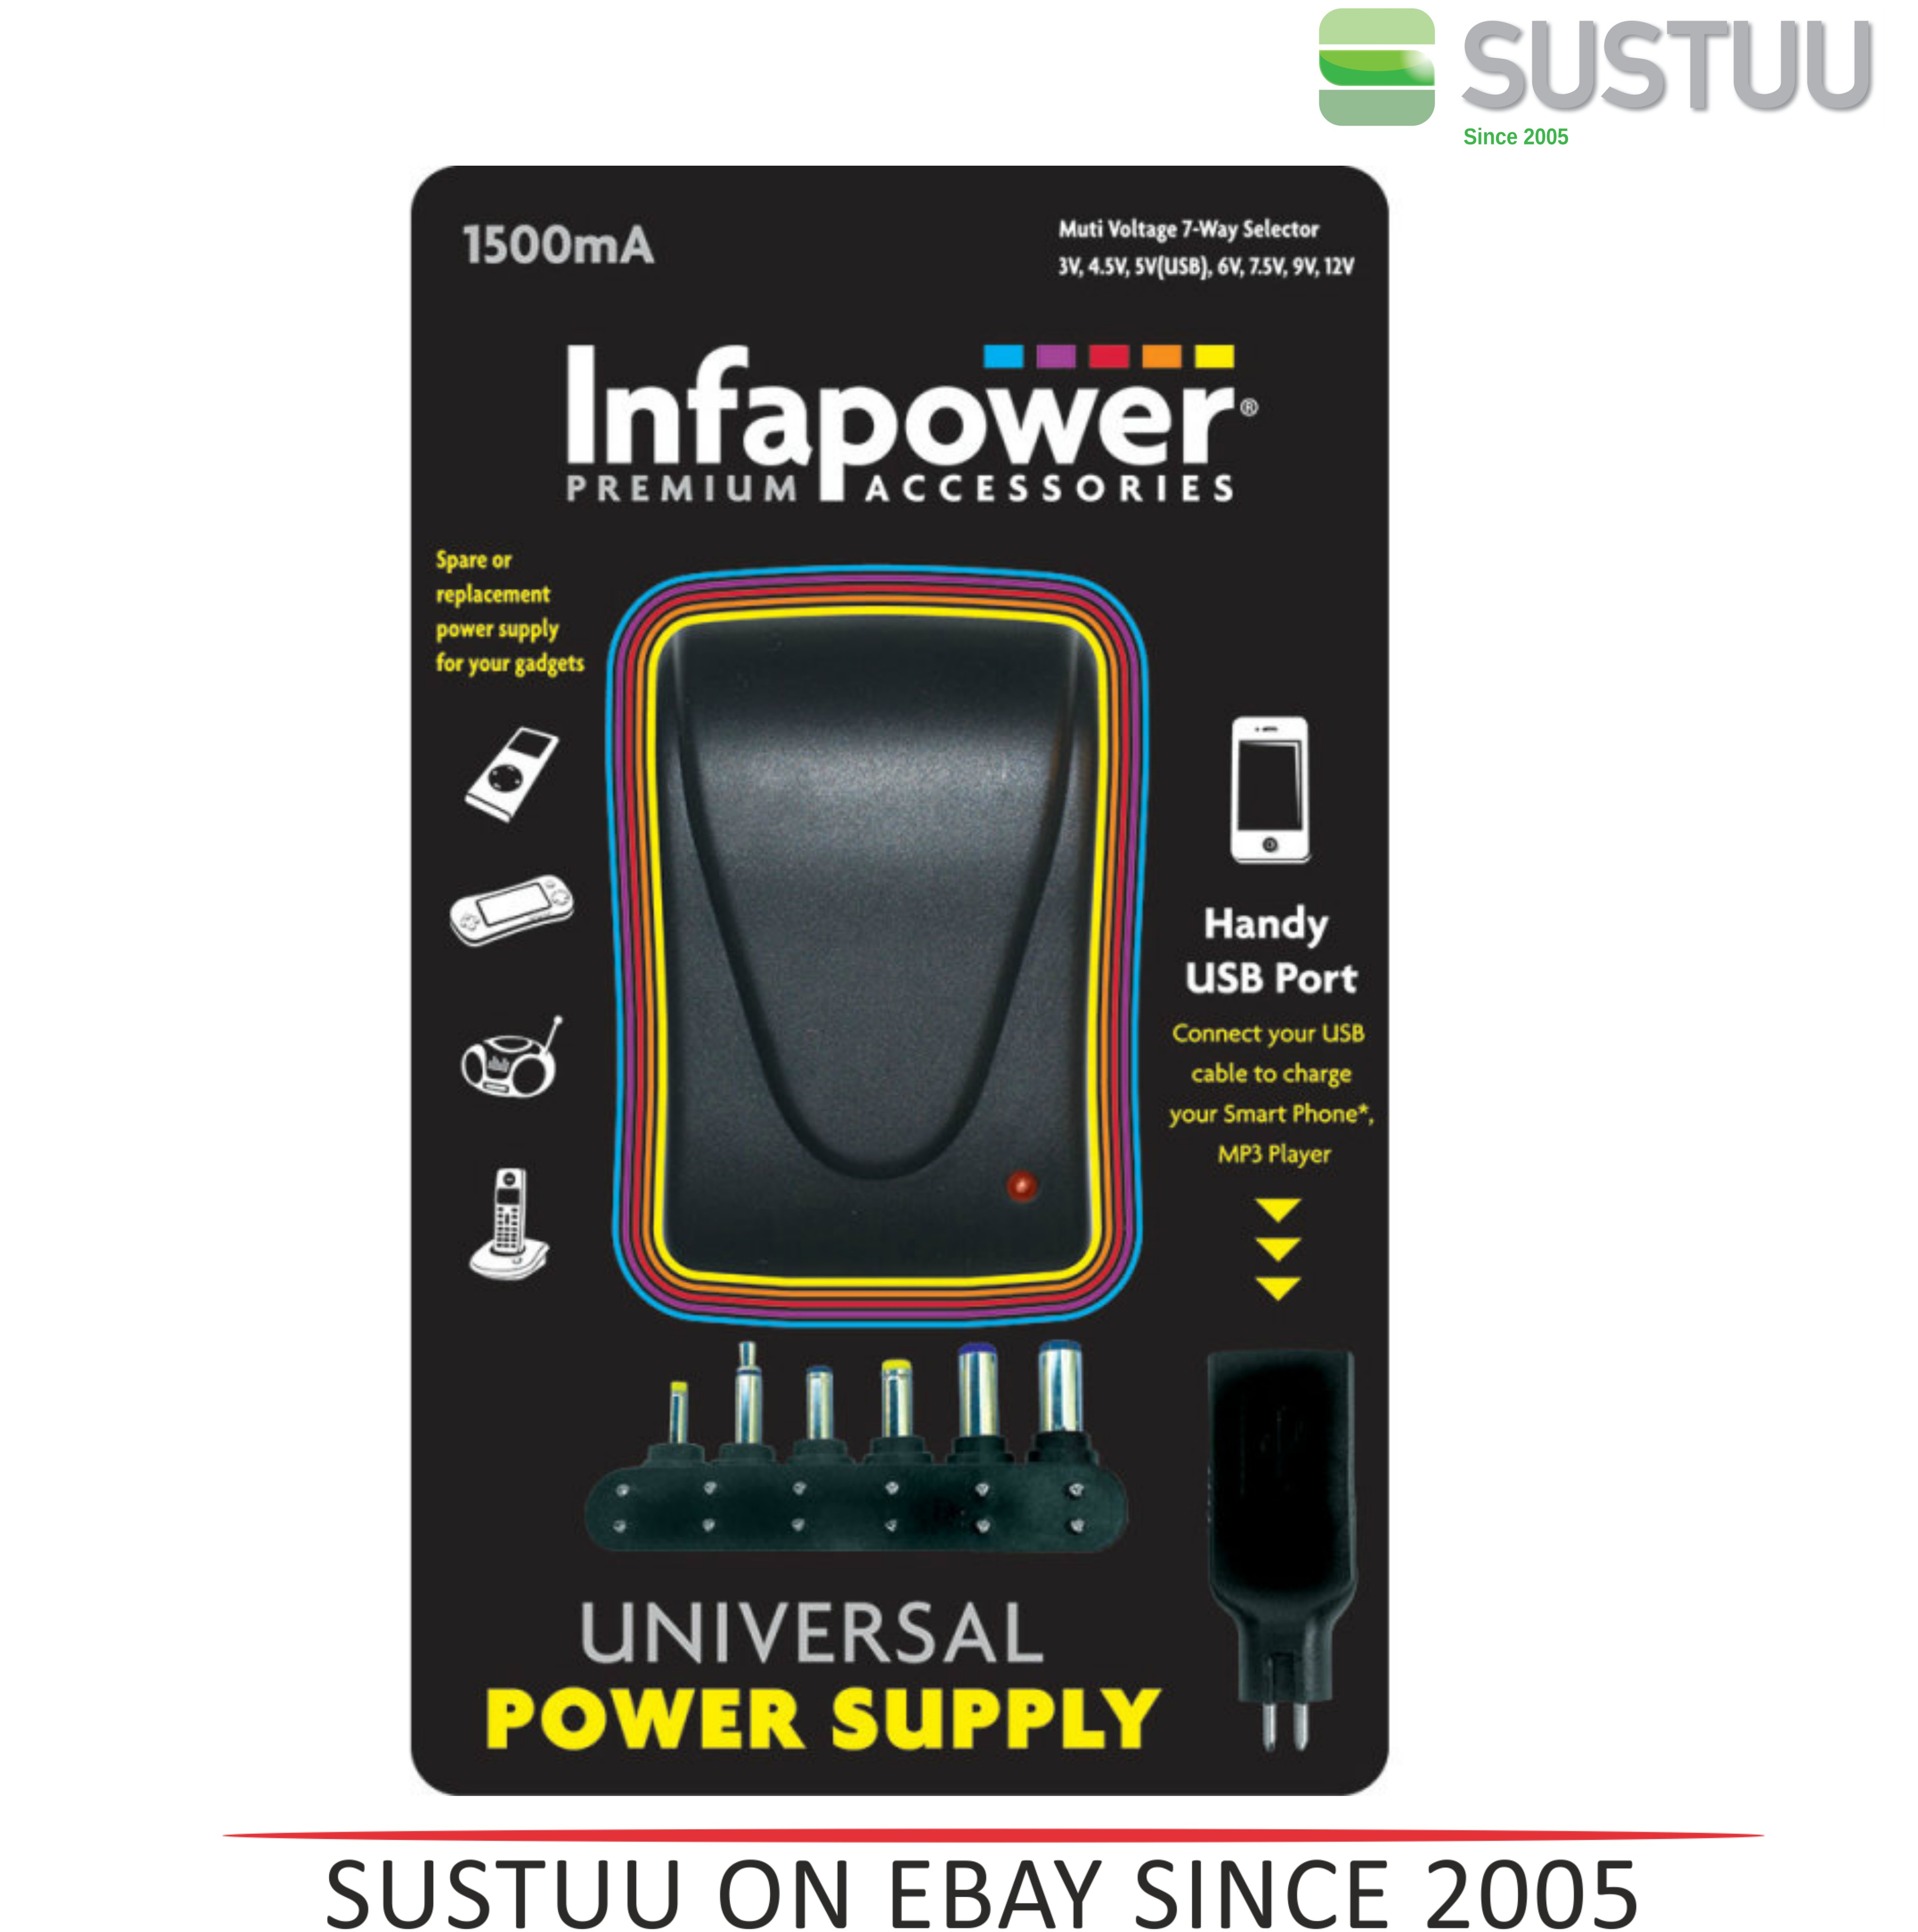 Infapower 1500mA 7-Way Universal Power Supply AC/DC Adaptor for Gadgets - P003